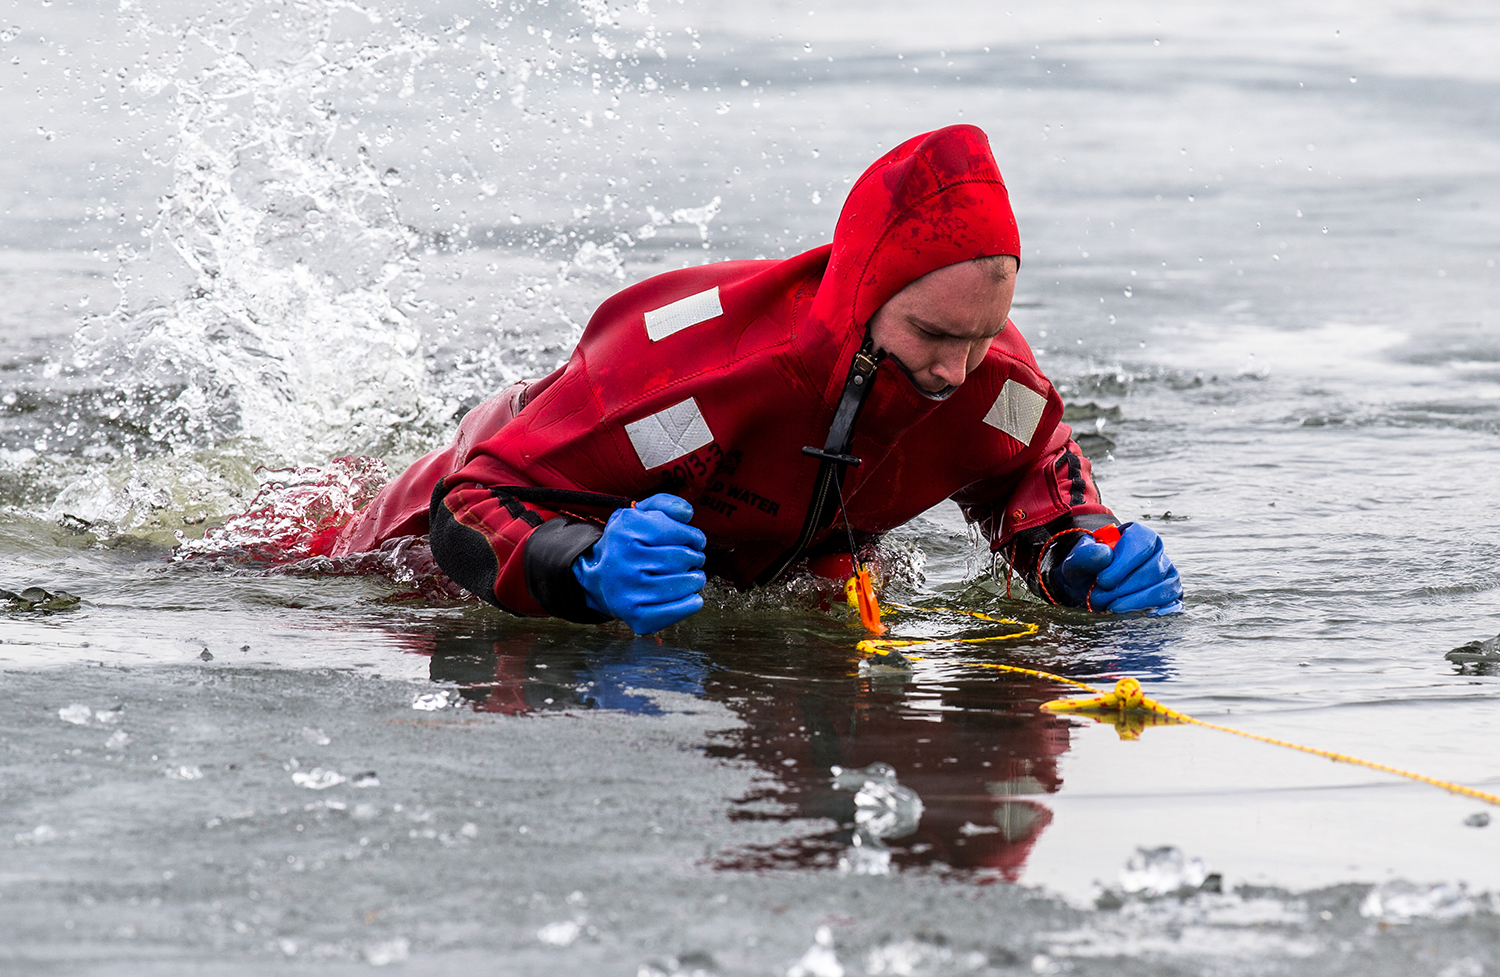 "Springfield firefighter Dan Gorton uses ice picks to pull himself out from a hole in the ice while wearing a cold water rescue suits during training at the pond at Knights Action Park, Wednesday, Jan. 31, 2018, in Springfield, Ill. ""This is part of the job we hope we never have to use,"" said Gorton. ""But this is great training."" Firefighters throughout the department goes through the annual ice training that gives them invaluable experience in rescue techniques while using the cold water rescue suits. [Justin L. Fowler/The State Journal-Register]"